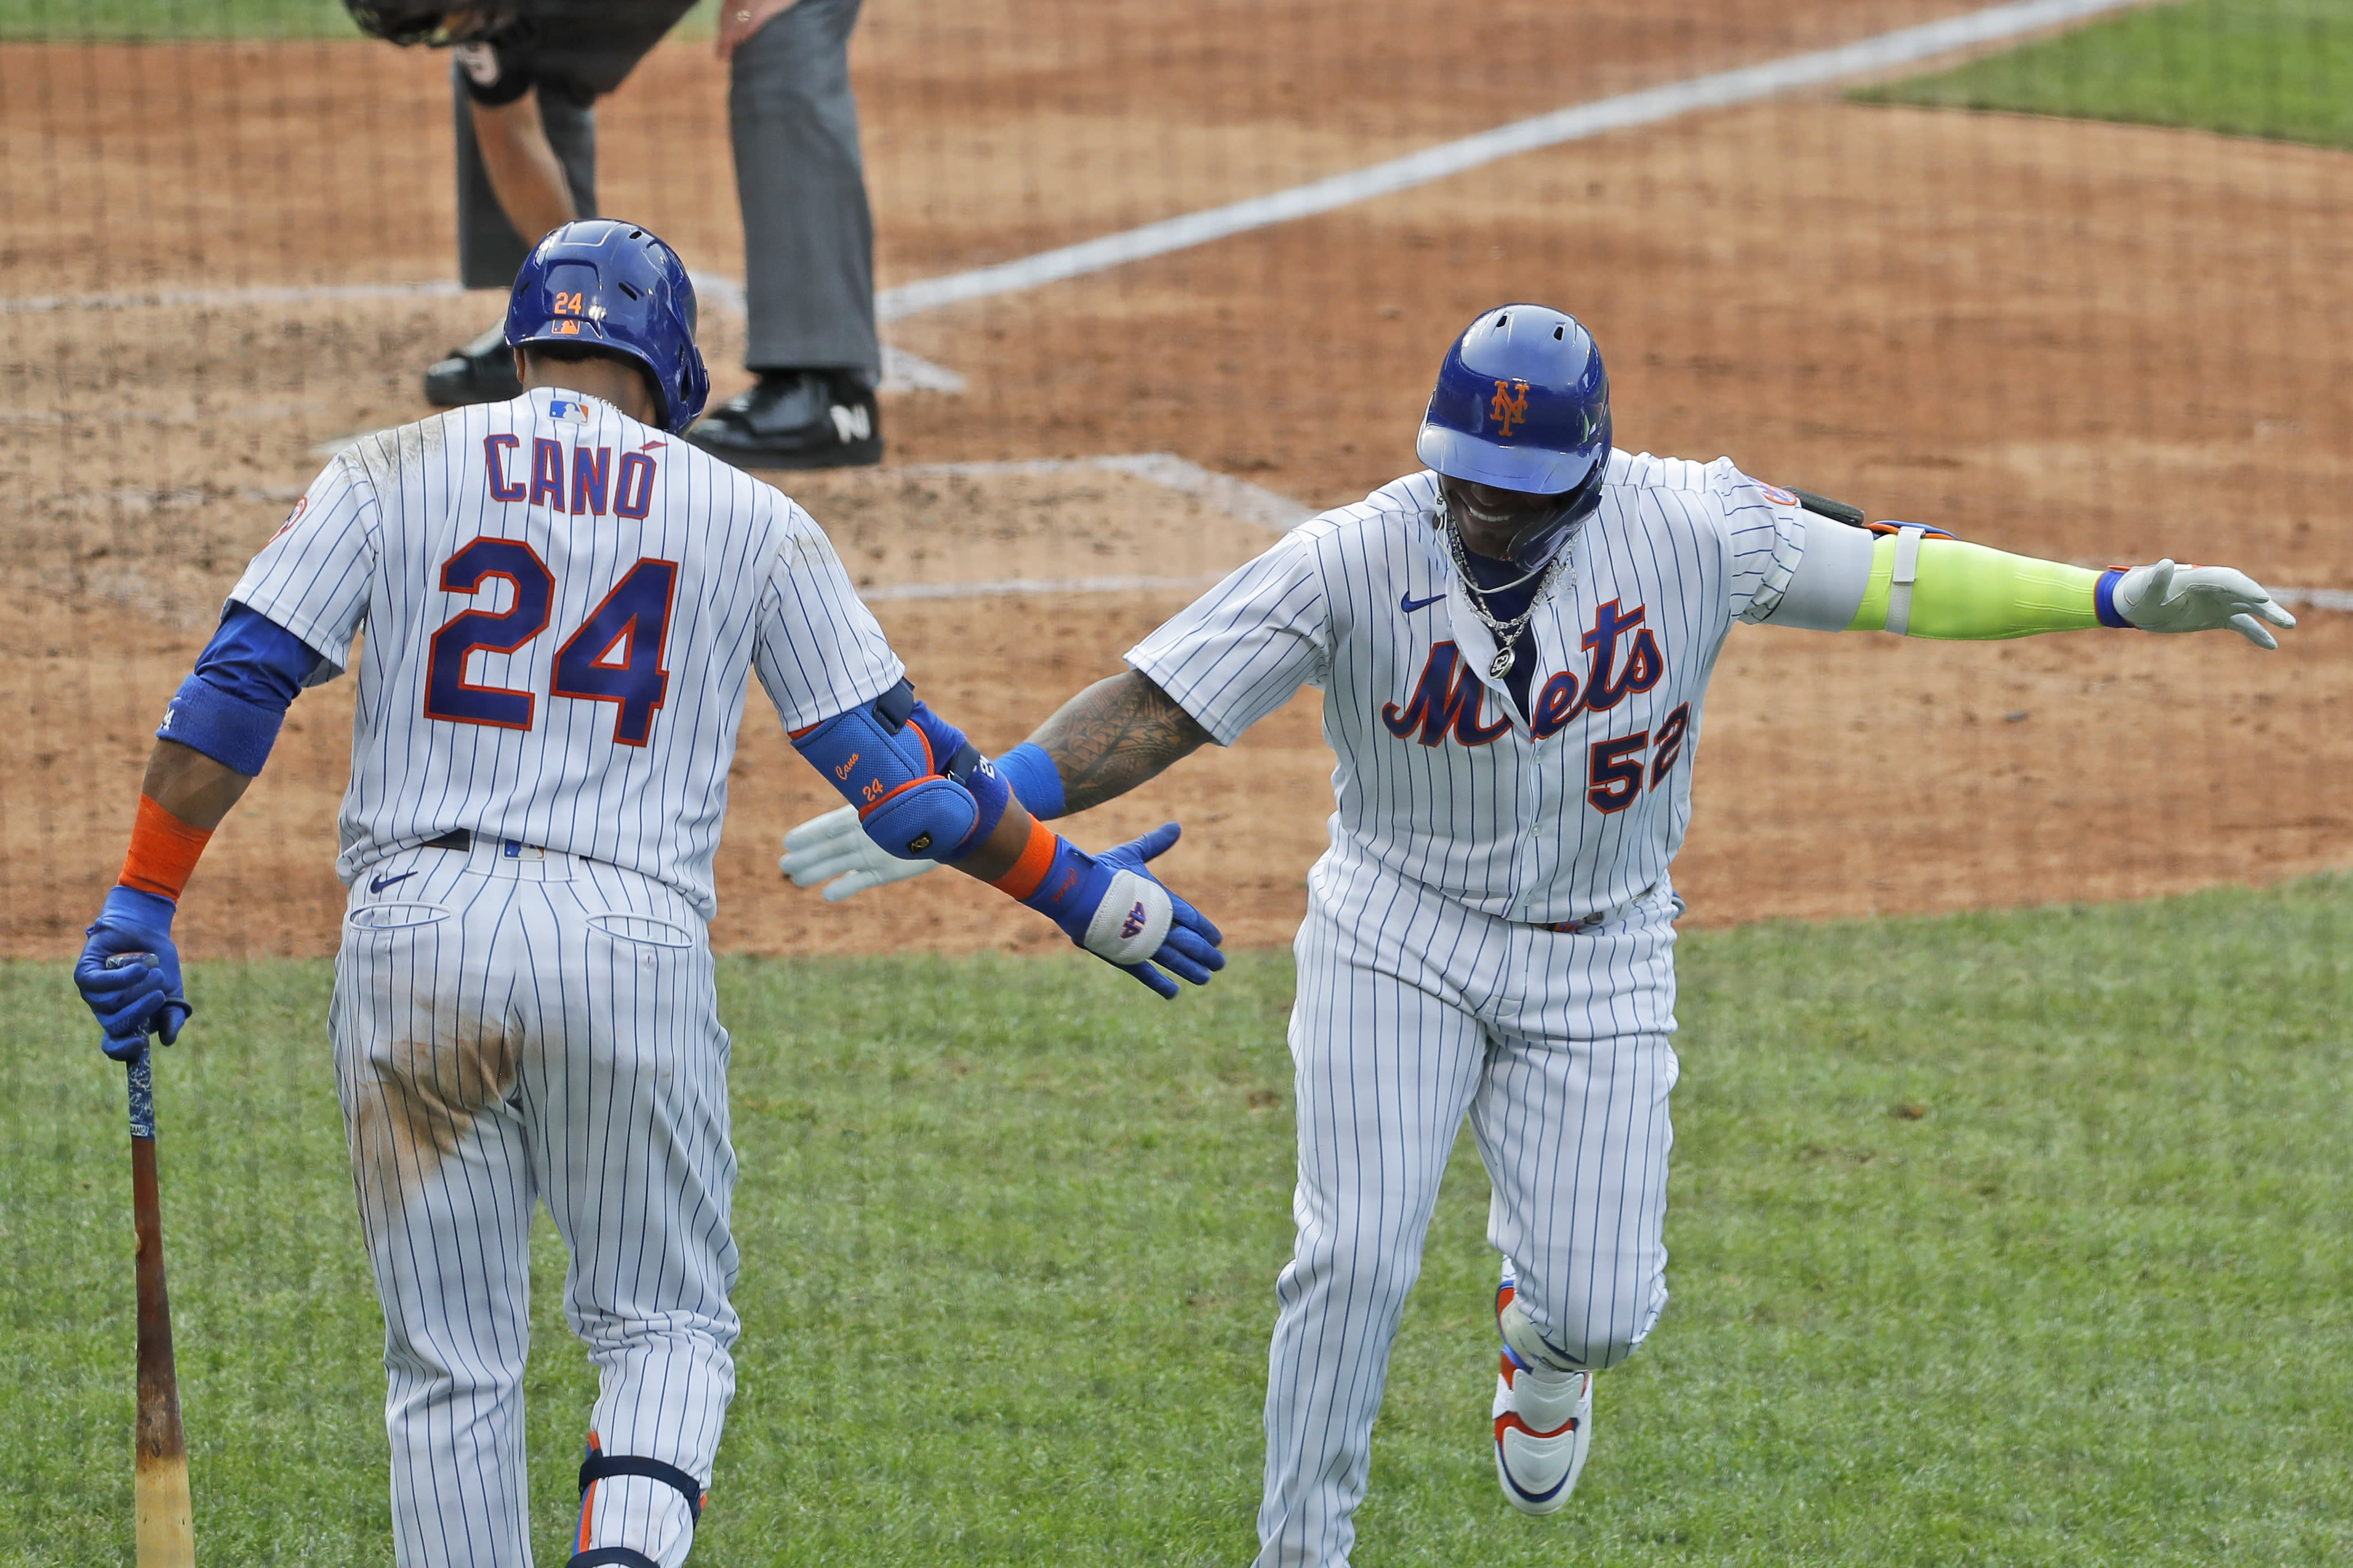 New York Mets' Yoenis Cespedes, right, celebrates his solo home run with Robinson Cano (24) during the seventh inning of a baseball game against the Atlanta Braves at Citi Field, Friday, July 24, 2020, in New York. (AP Photo/Seth Wenig)